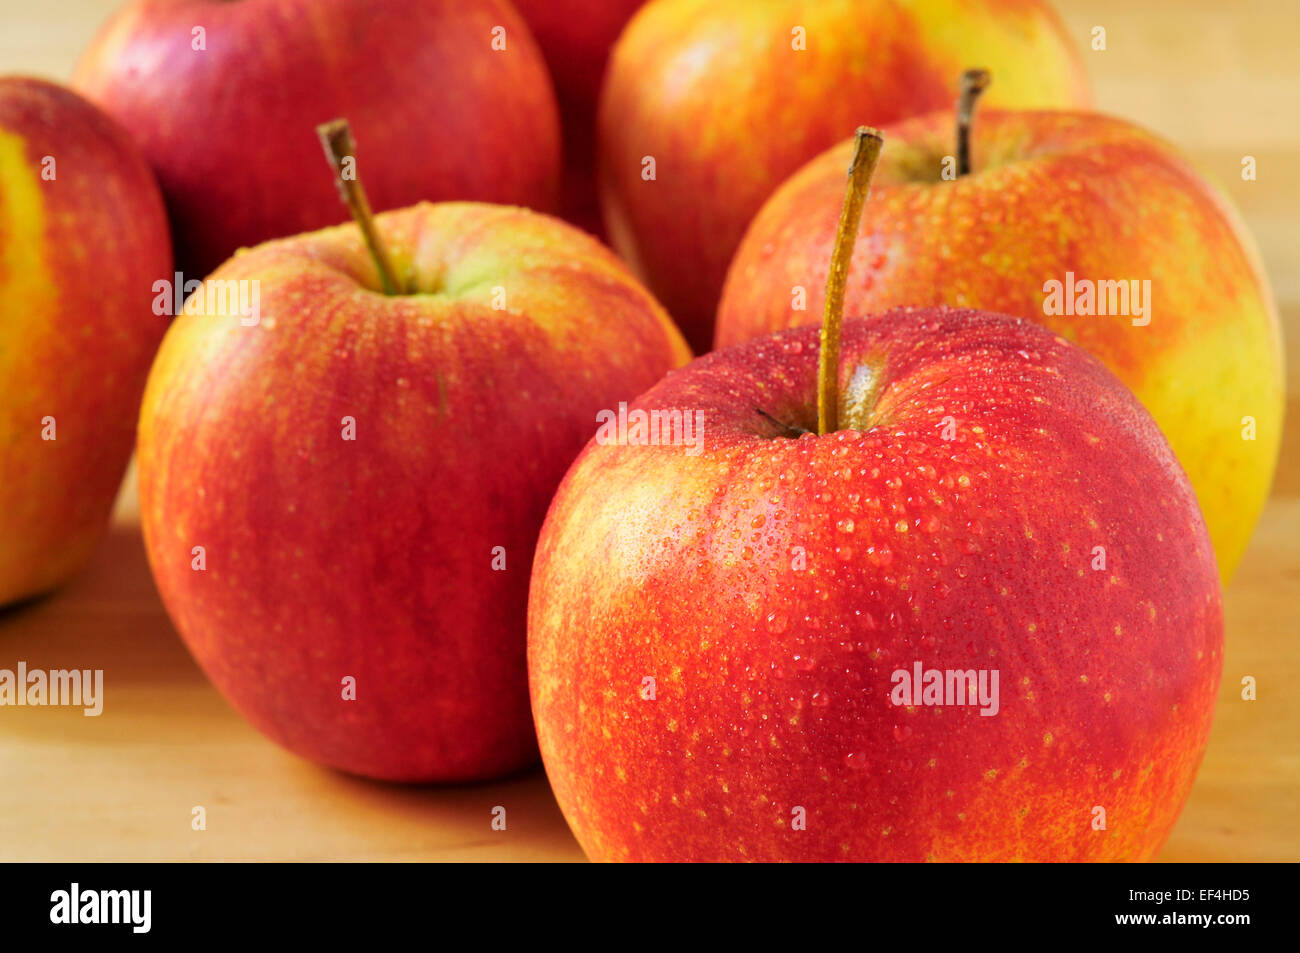 closeup of a pile of appetizing and fresh apples on a table - Stock Image